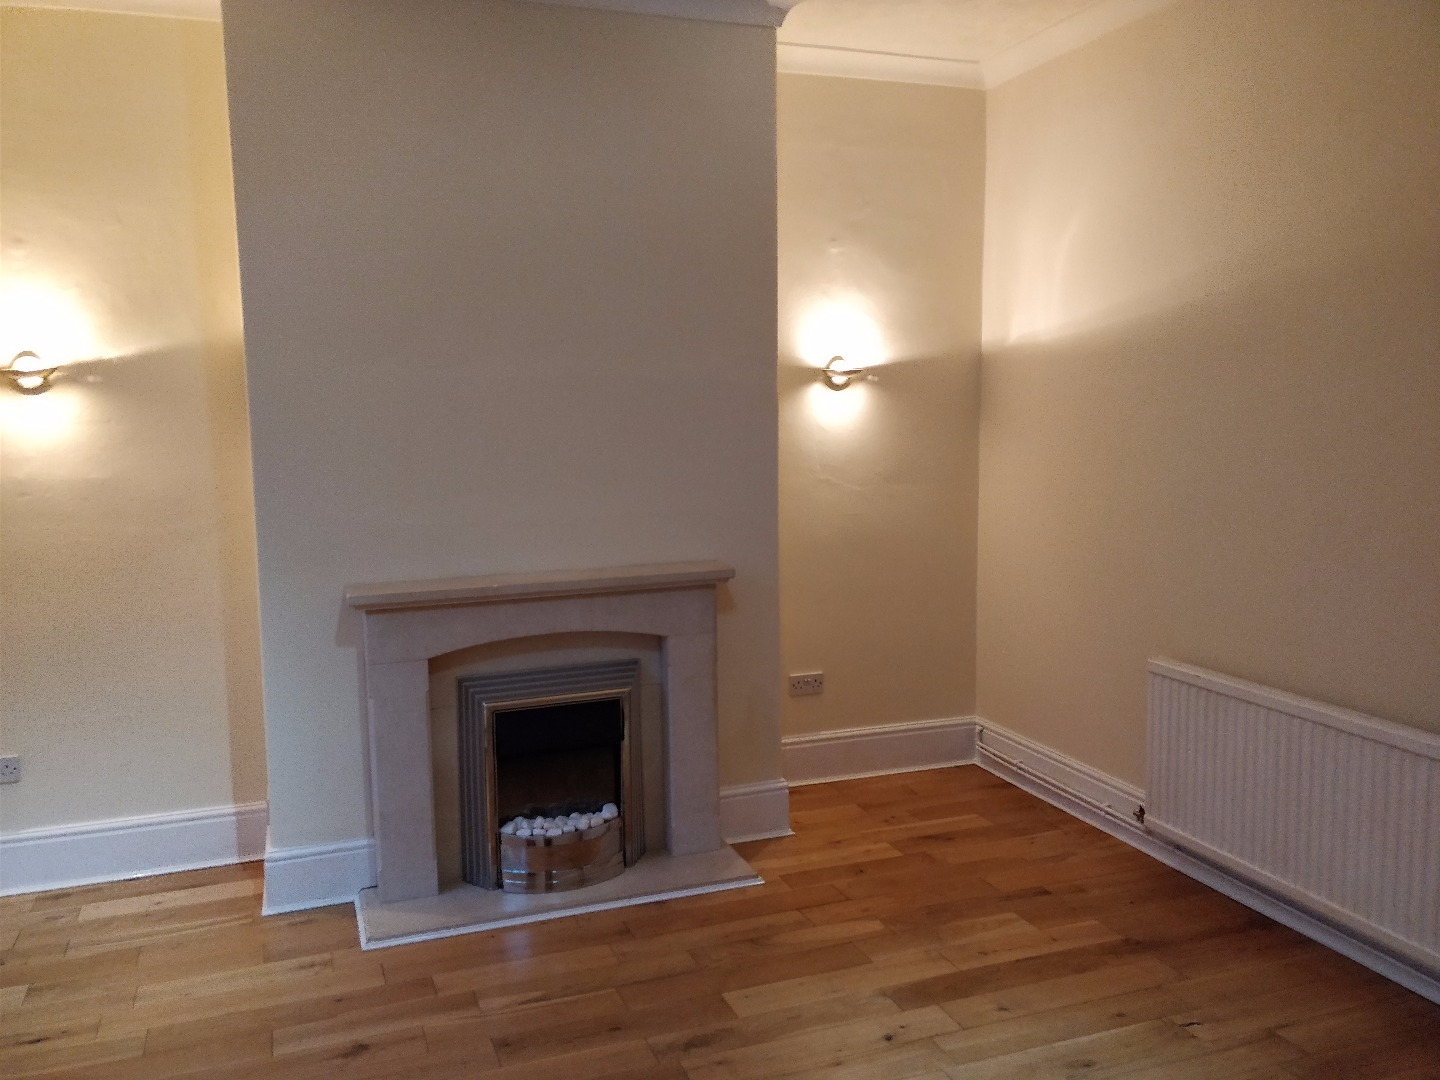 2 bed House to rent on Clyde Road, Radcliffe - Property Image 1